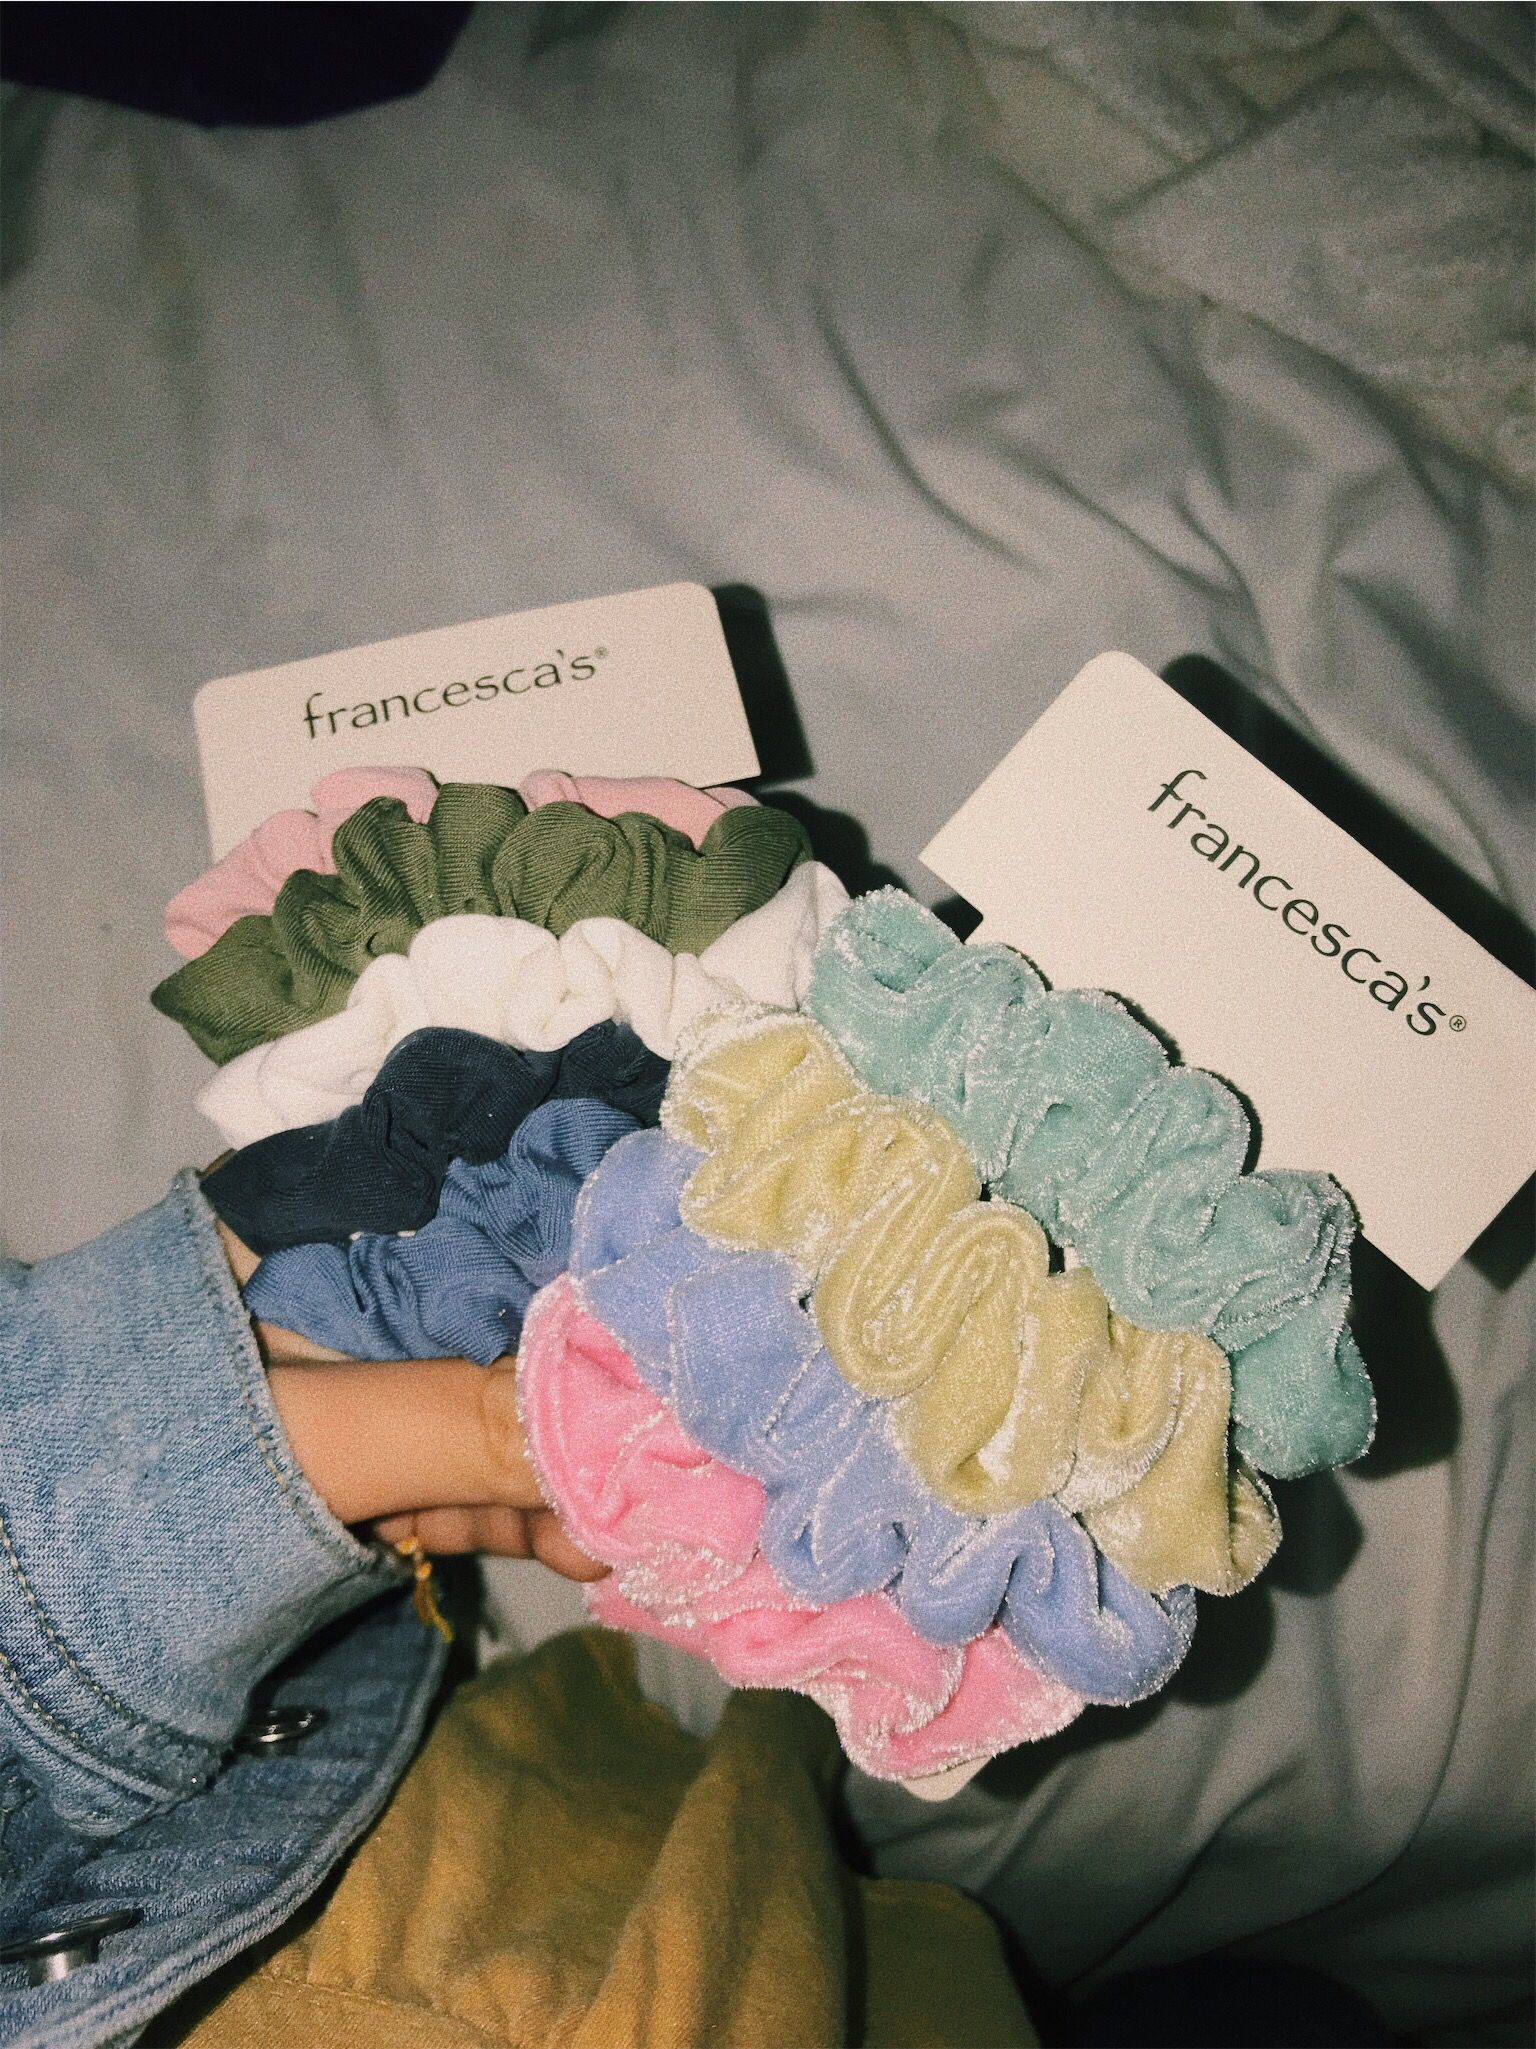 Pin By Abby Rose On Outfit Inspiration Scrunchies Hair Ties Cute